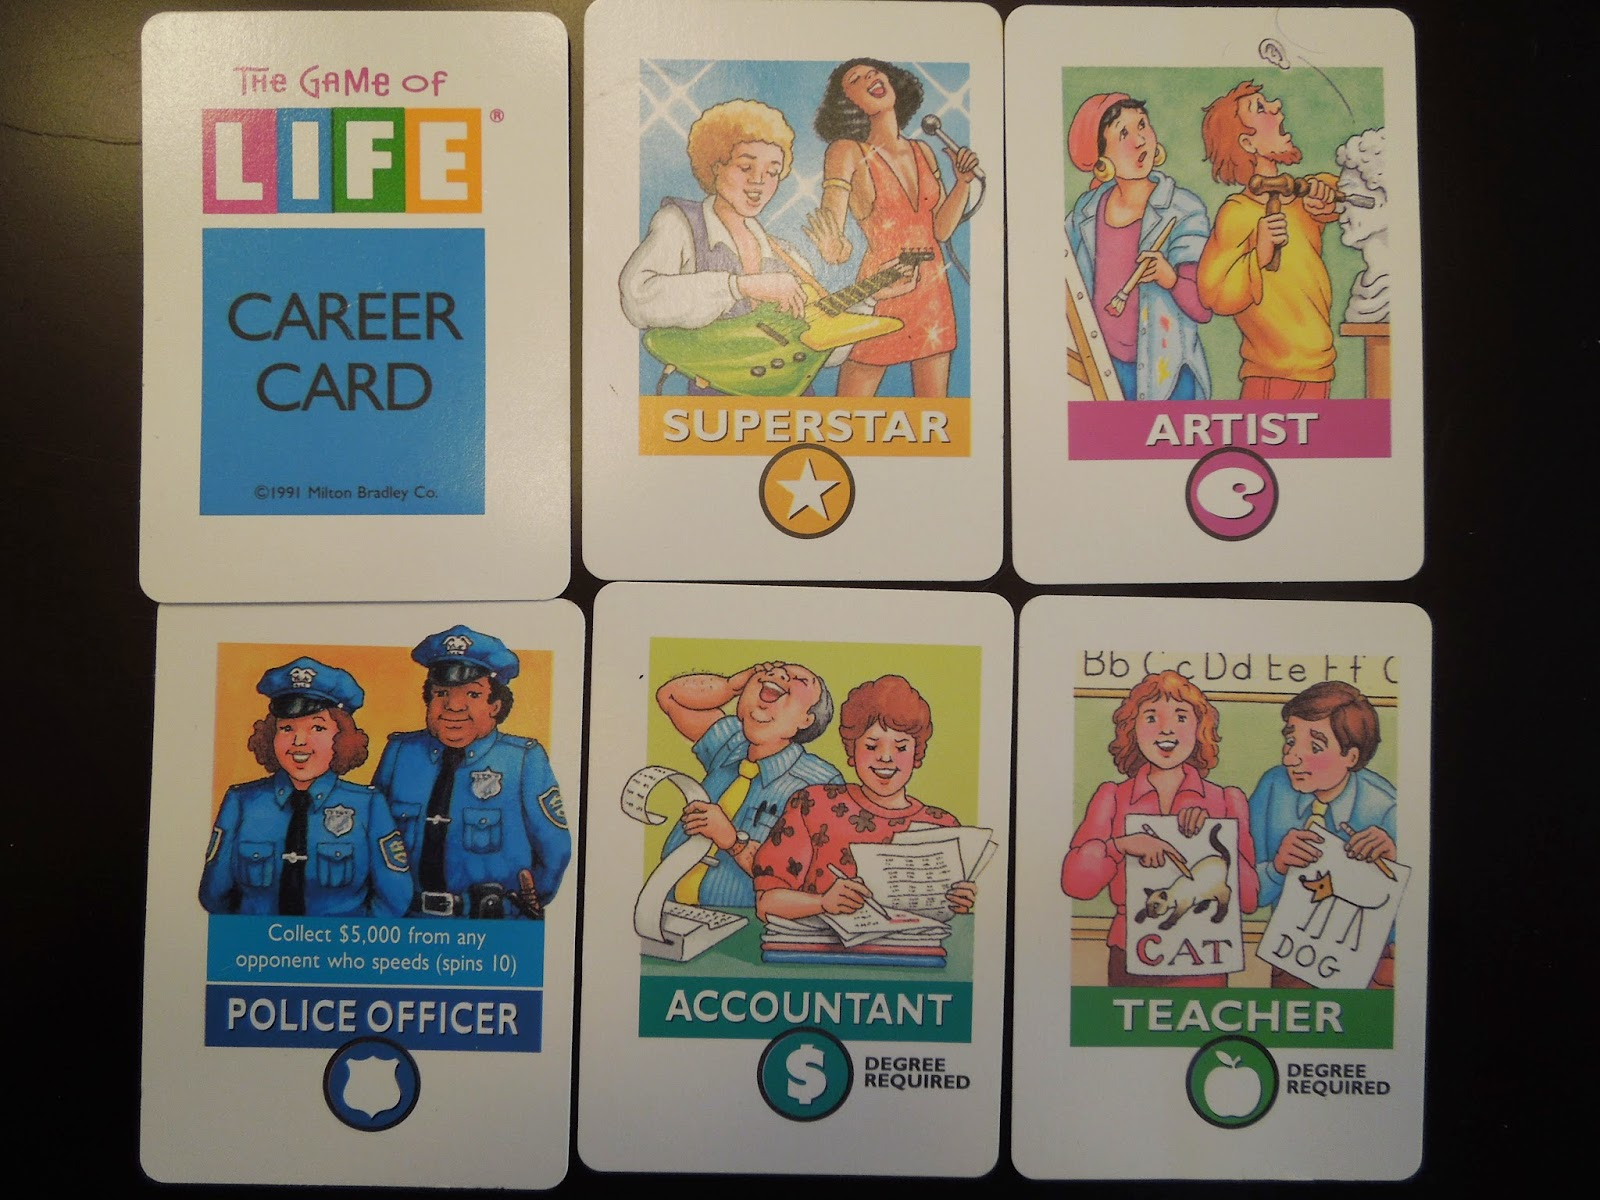 I mean, look at the glee on the accountant's face as he cooks the books in the Game of Life.